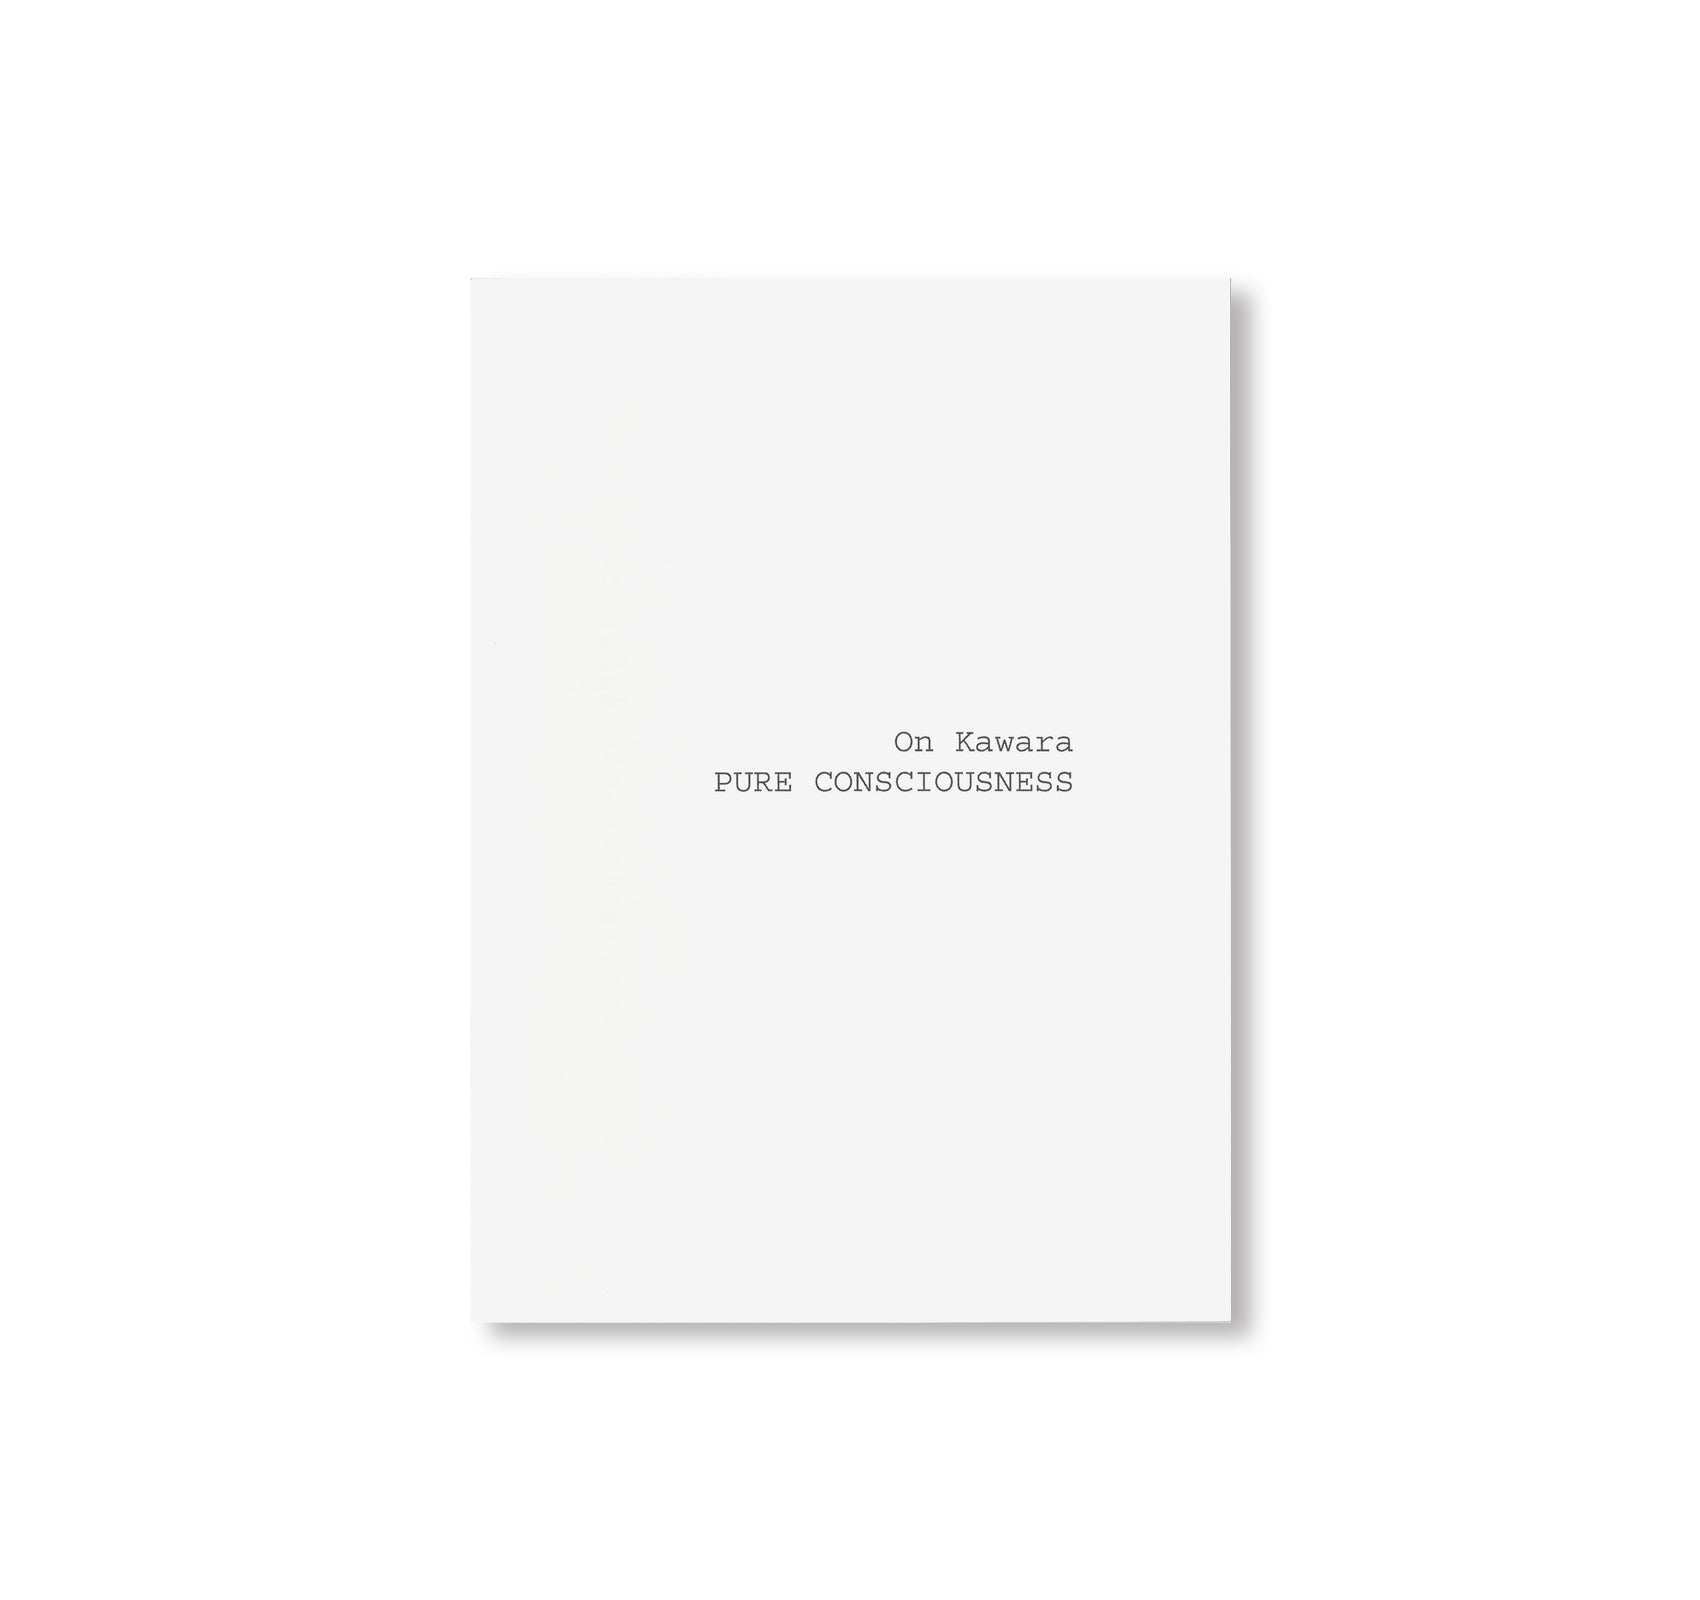 PURE CONSCIOUSNESS 1998–2013 by On Kawara